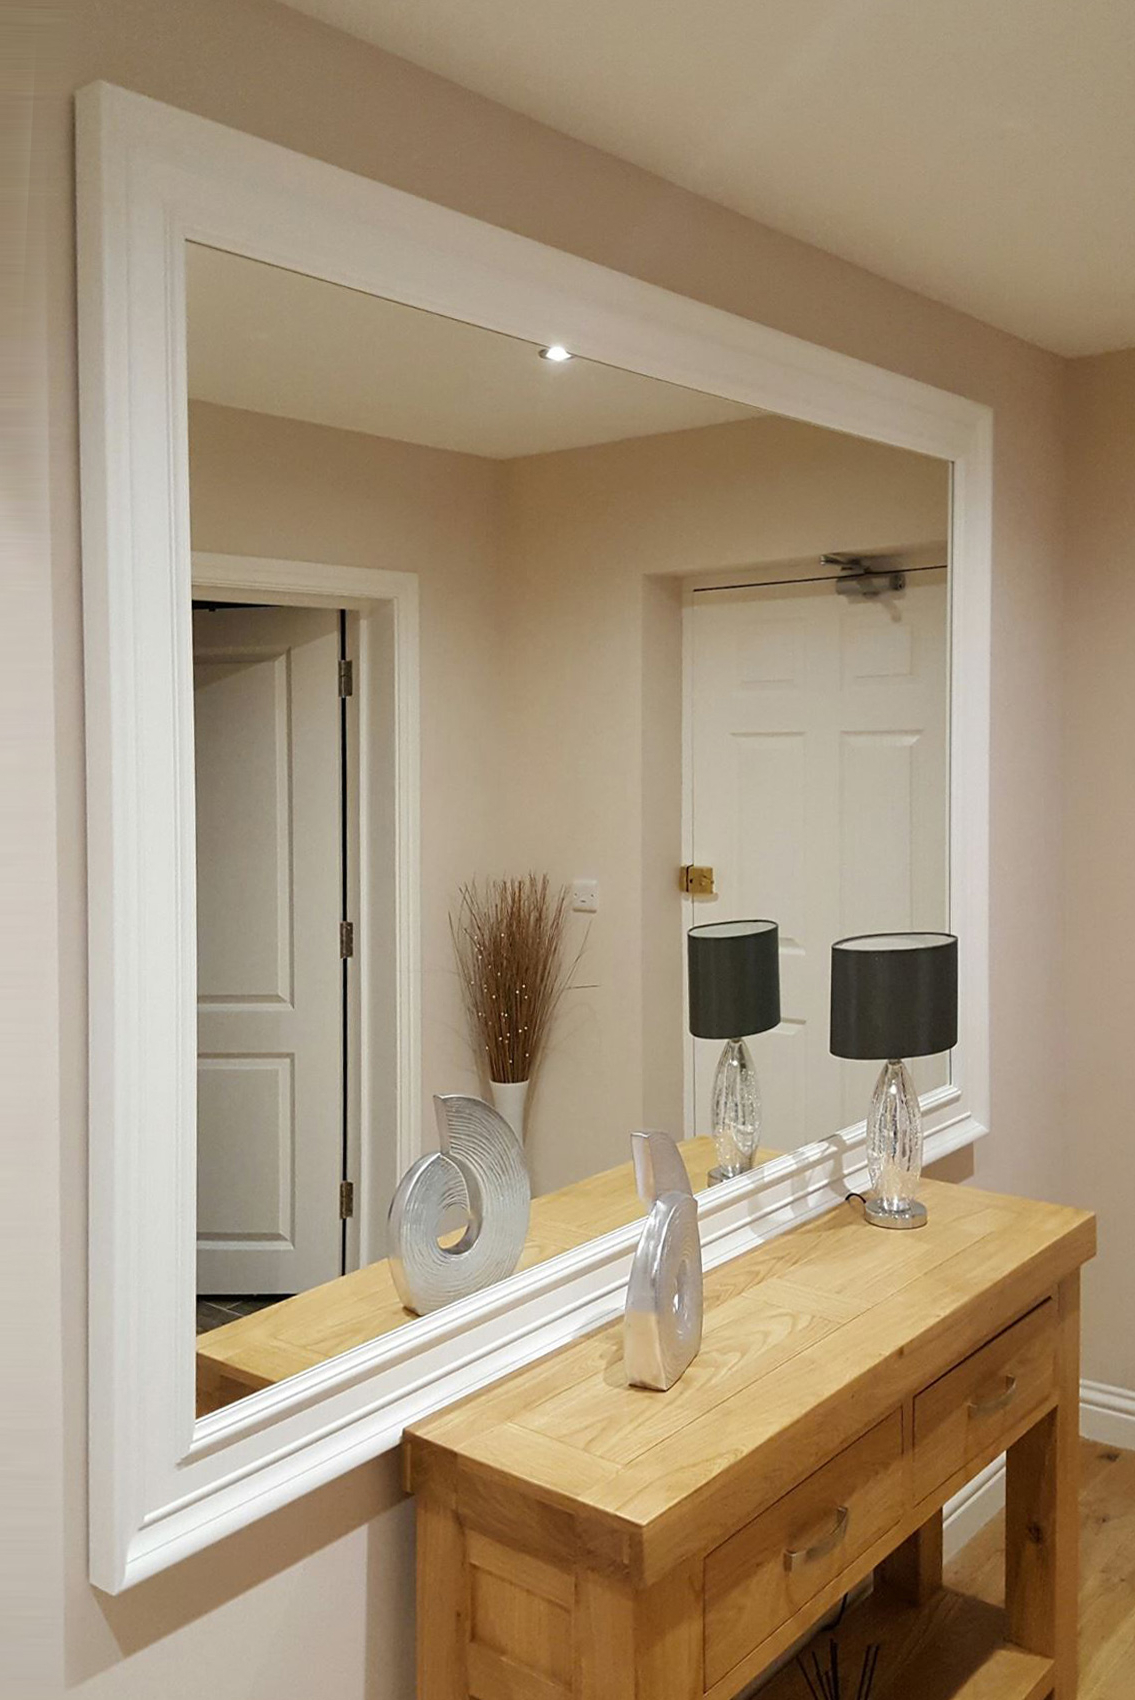 Oxford Extra Large White Mirror (2 Sizes & Bespoke) Intended For Favorite Extra Large Framed Wall Mirrors (Gallery 10 of 20)